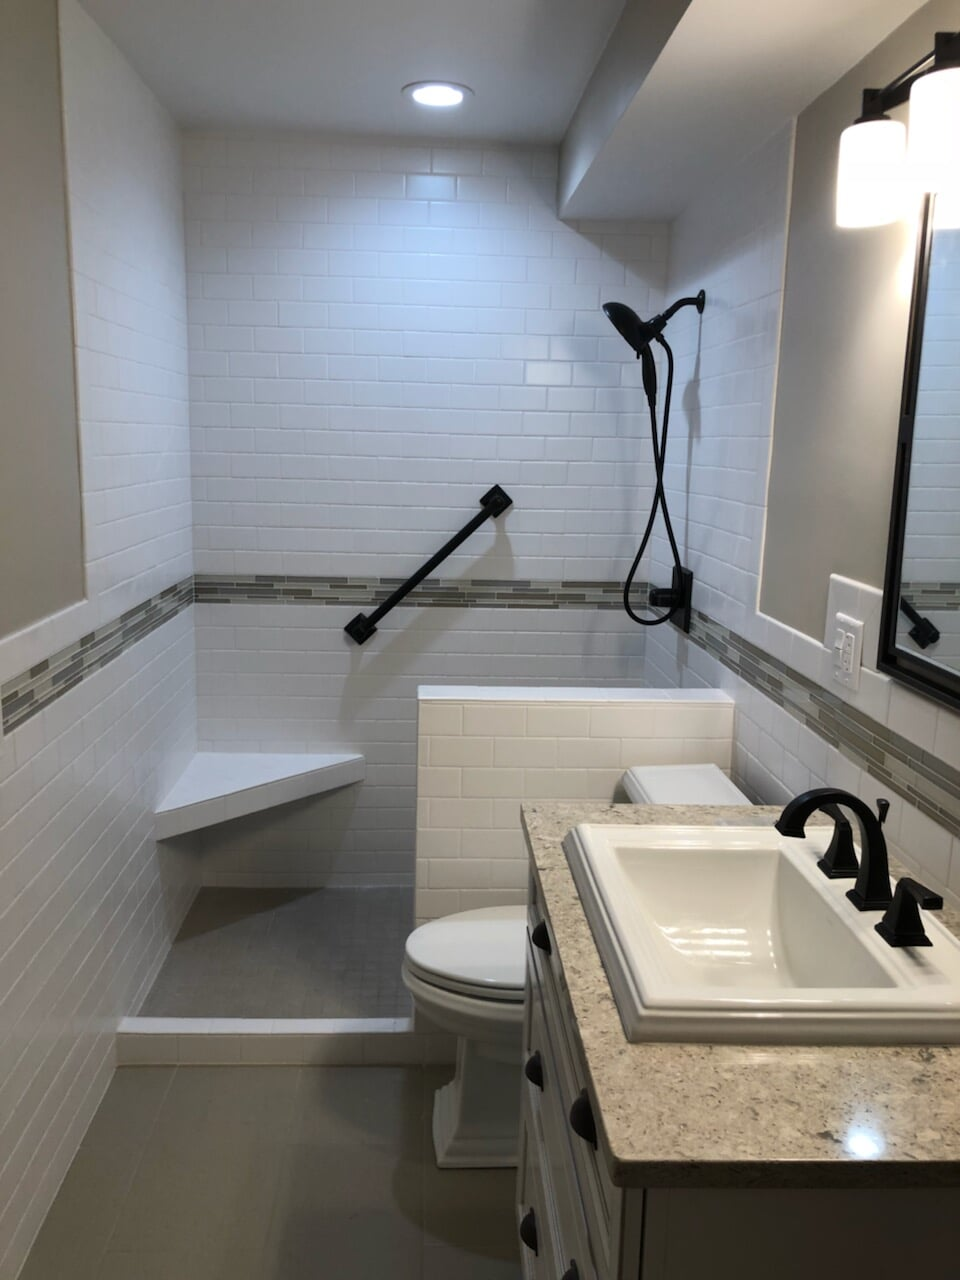 Modern accessible bathroom in New Lenox, IL from Marchio Tile & Carpet Inc.